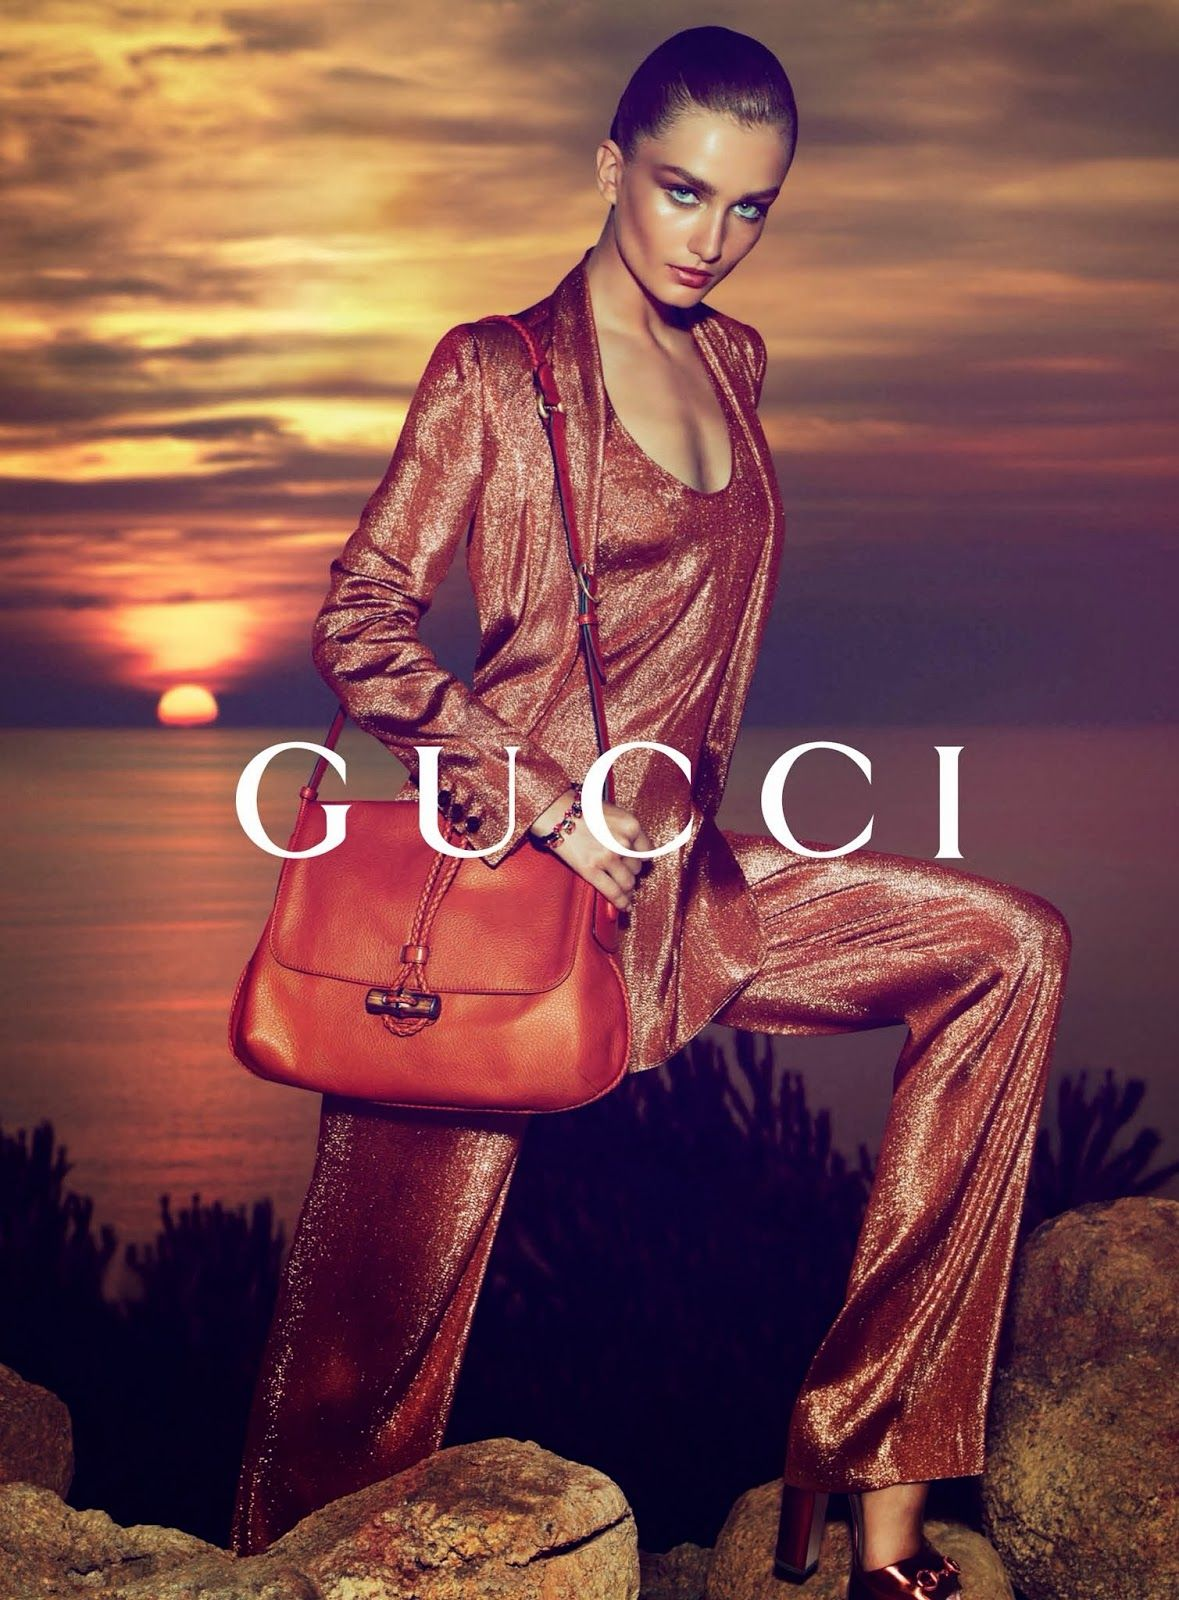 a6a18ae2c4 Gucci Ad campagne imgmodels Tumblr   Advertising Campaigns in 2019 ...